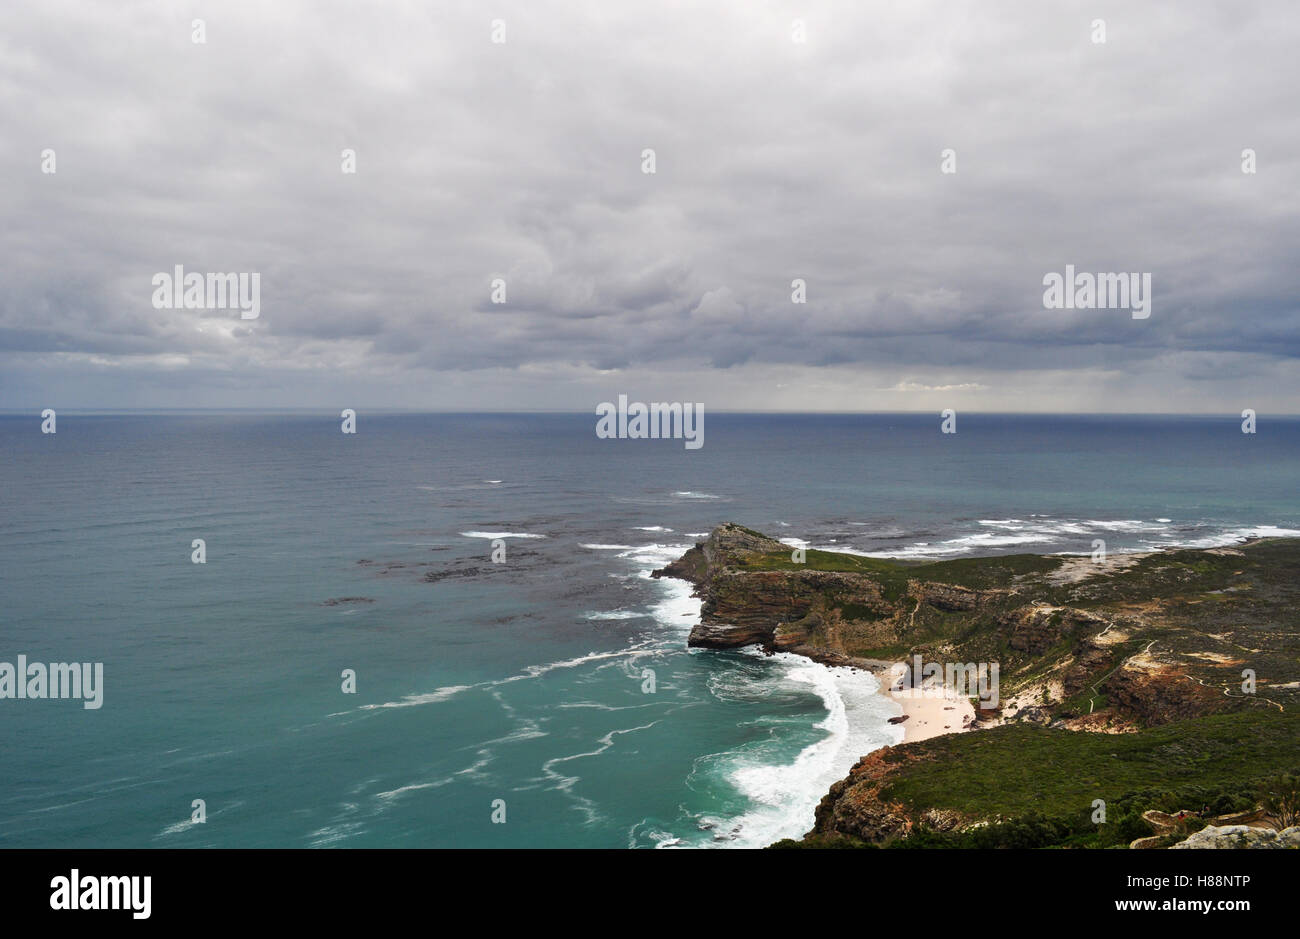 South Africa: waves at the beach of the famous Cape of Good Hope, rocky headland on the Atlantic coast of Cape Peninsula - Stock Image